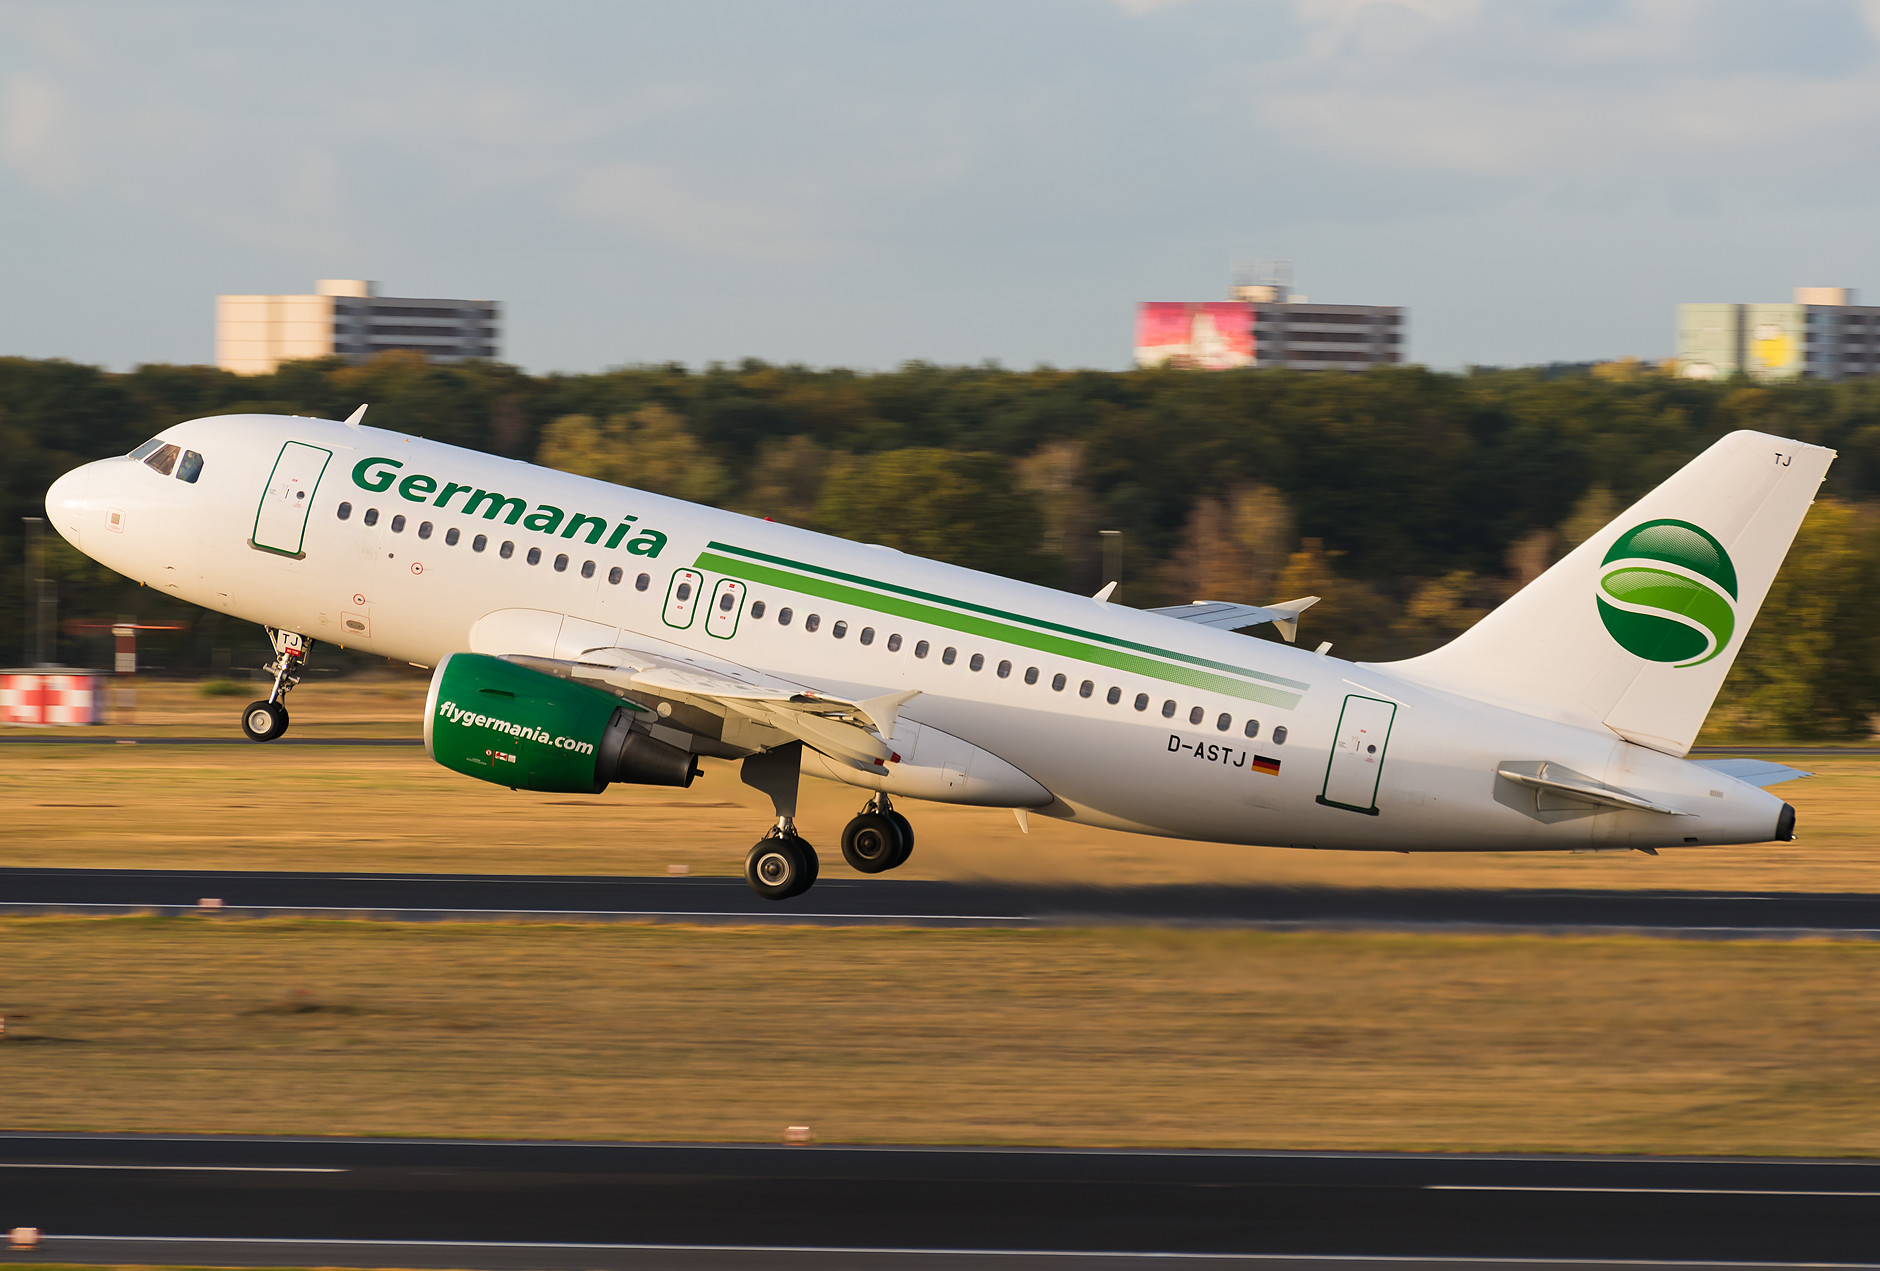 Germania - A319 and a beautiful golden hour.